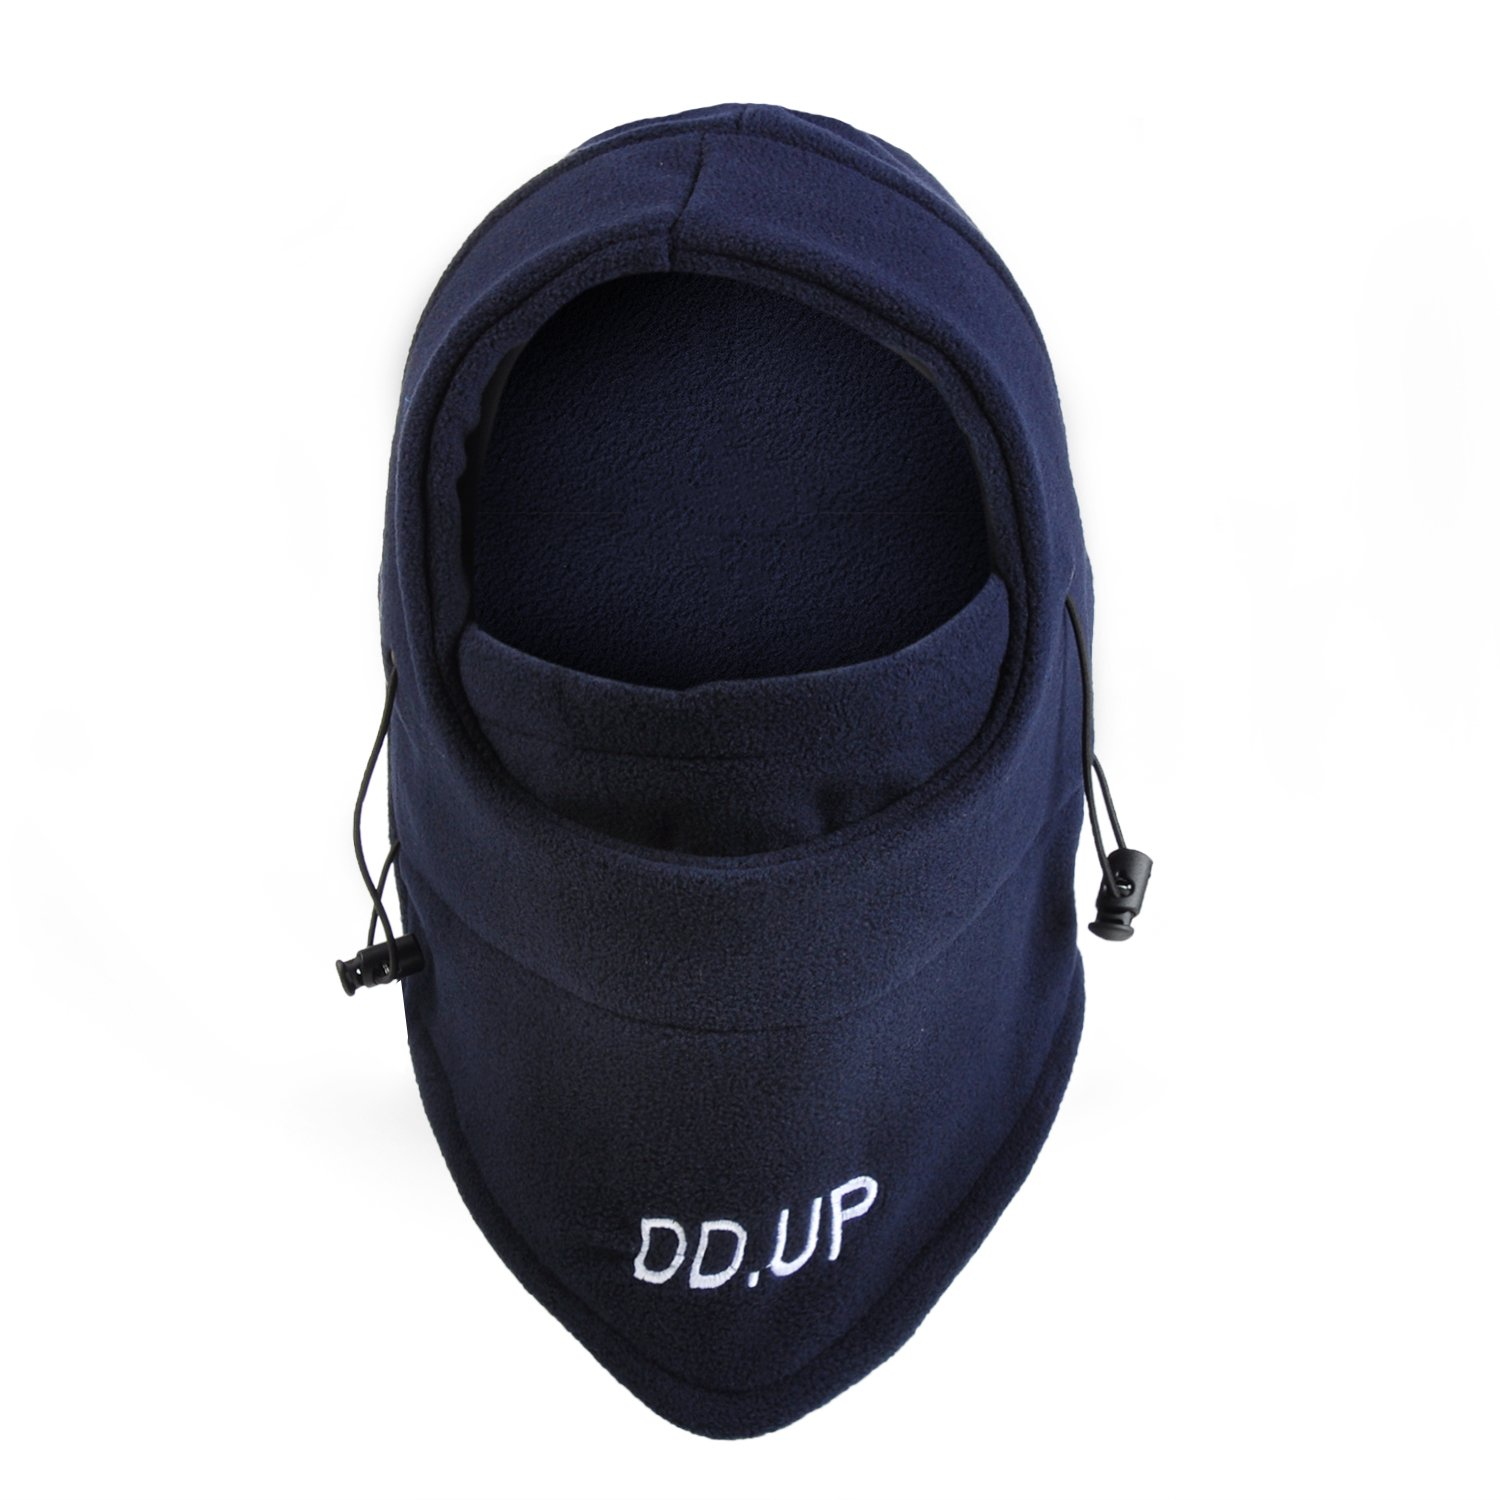 DD.UP MZ Kid's Winter Warm Windproof Ski Hat Thick Thermal Cover Cap Adjustable Balaclava Hood